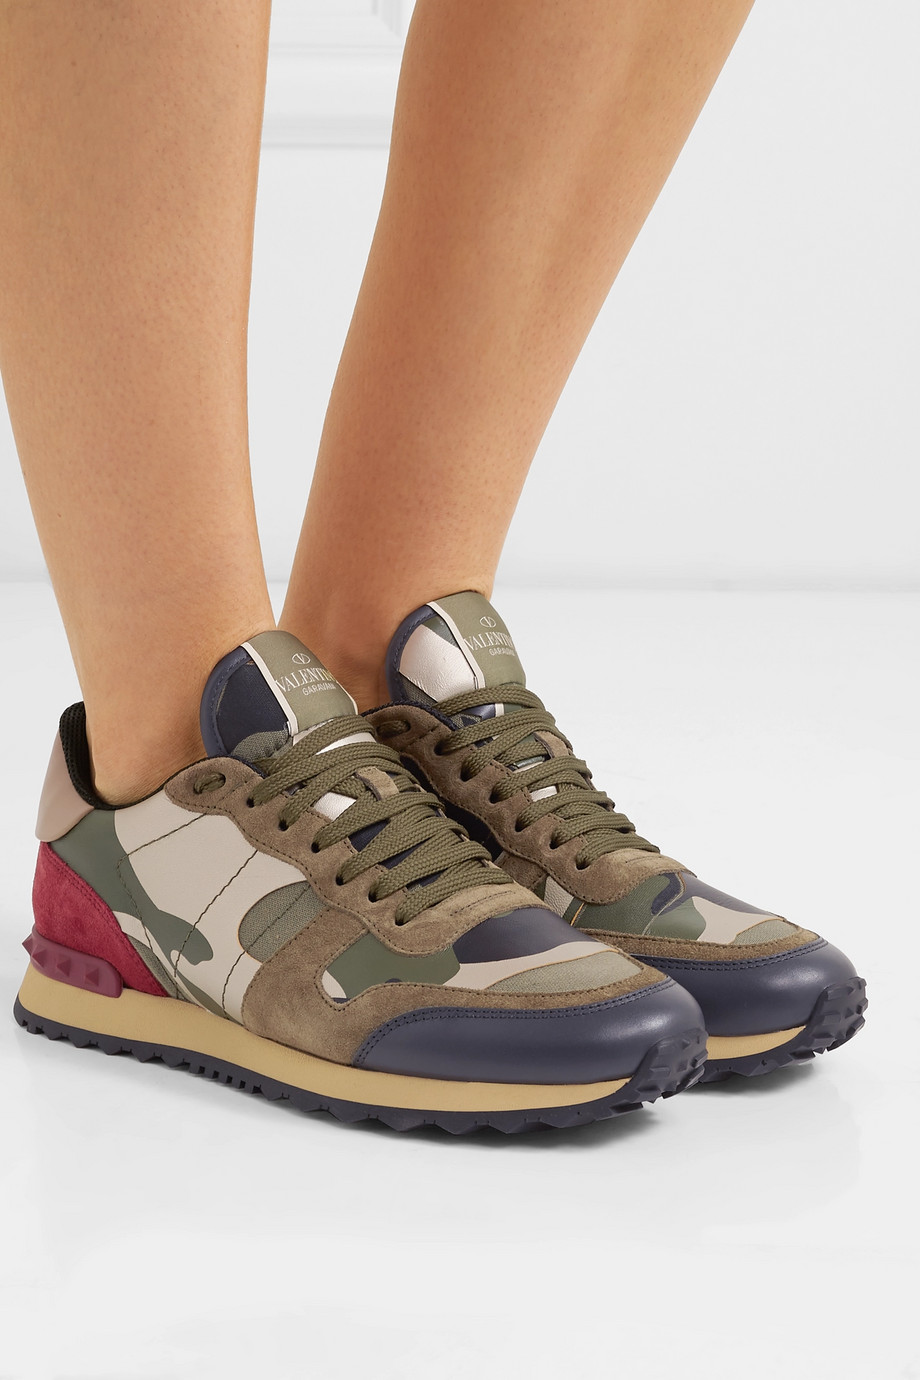 VALENTINO Valentino Garavani Rockrunner leather and suede-trimmed camouflage-print canvas sneakers